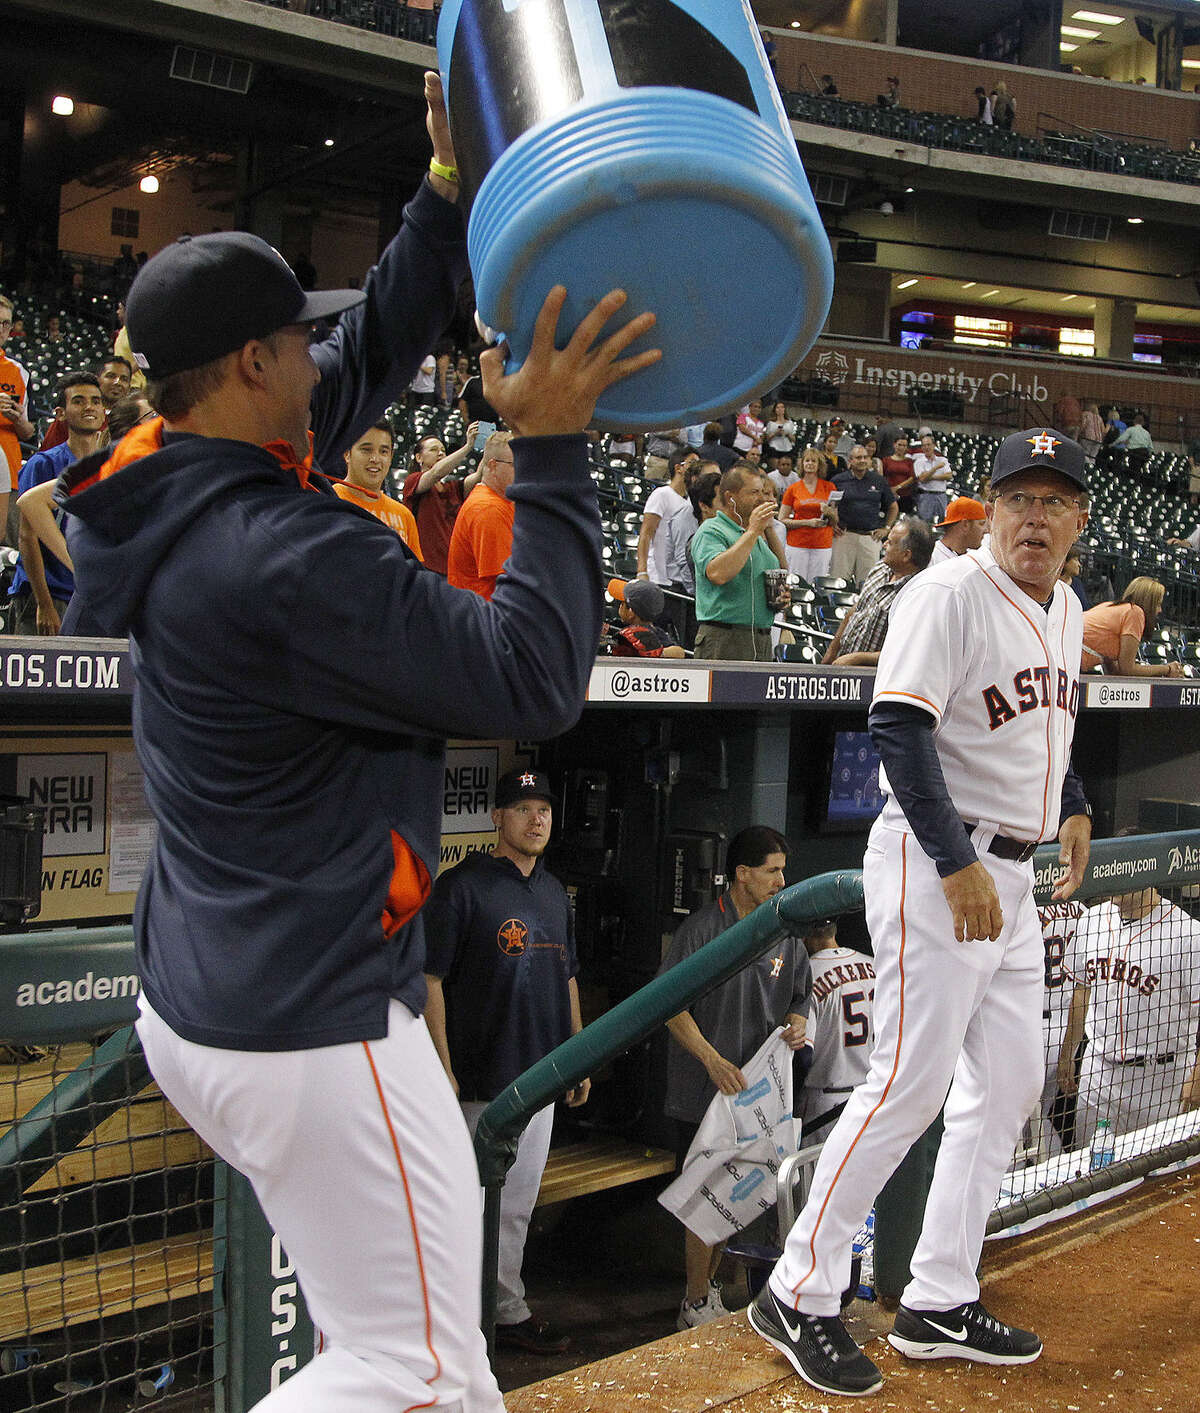 Astros interim manager Tom Lawless (right) looks to avoid a celebratory bucket of ice water held by George Springer after Houston won its first game following the firing of Bo Porter.